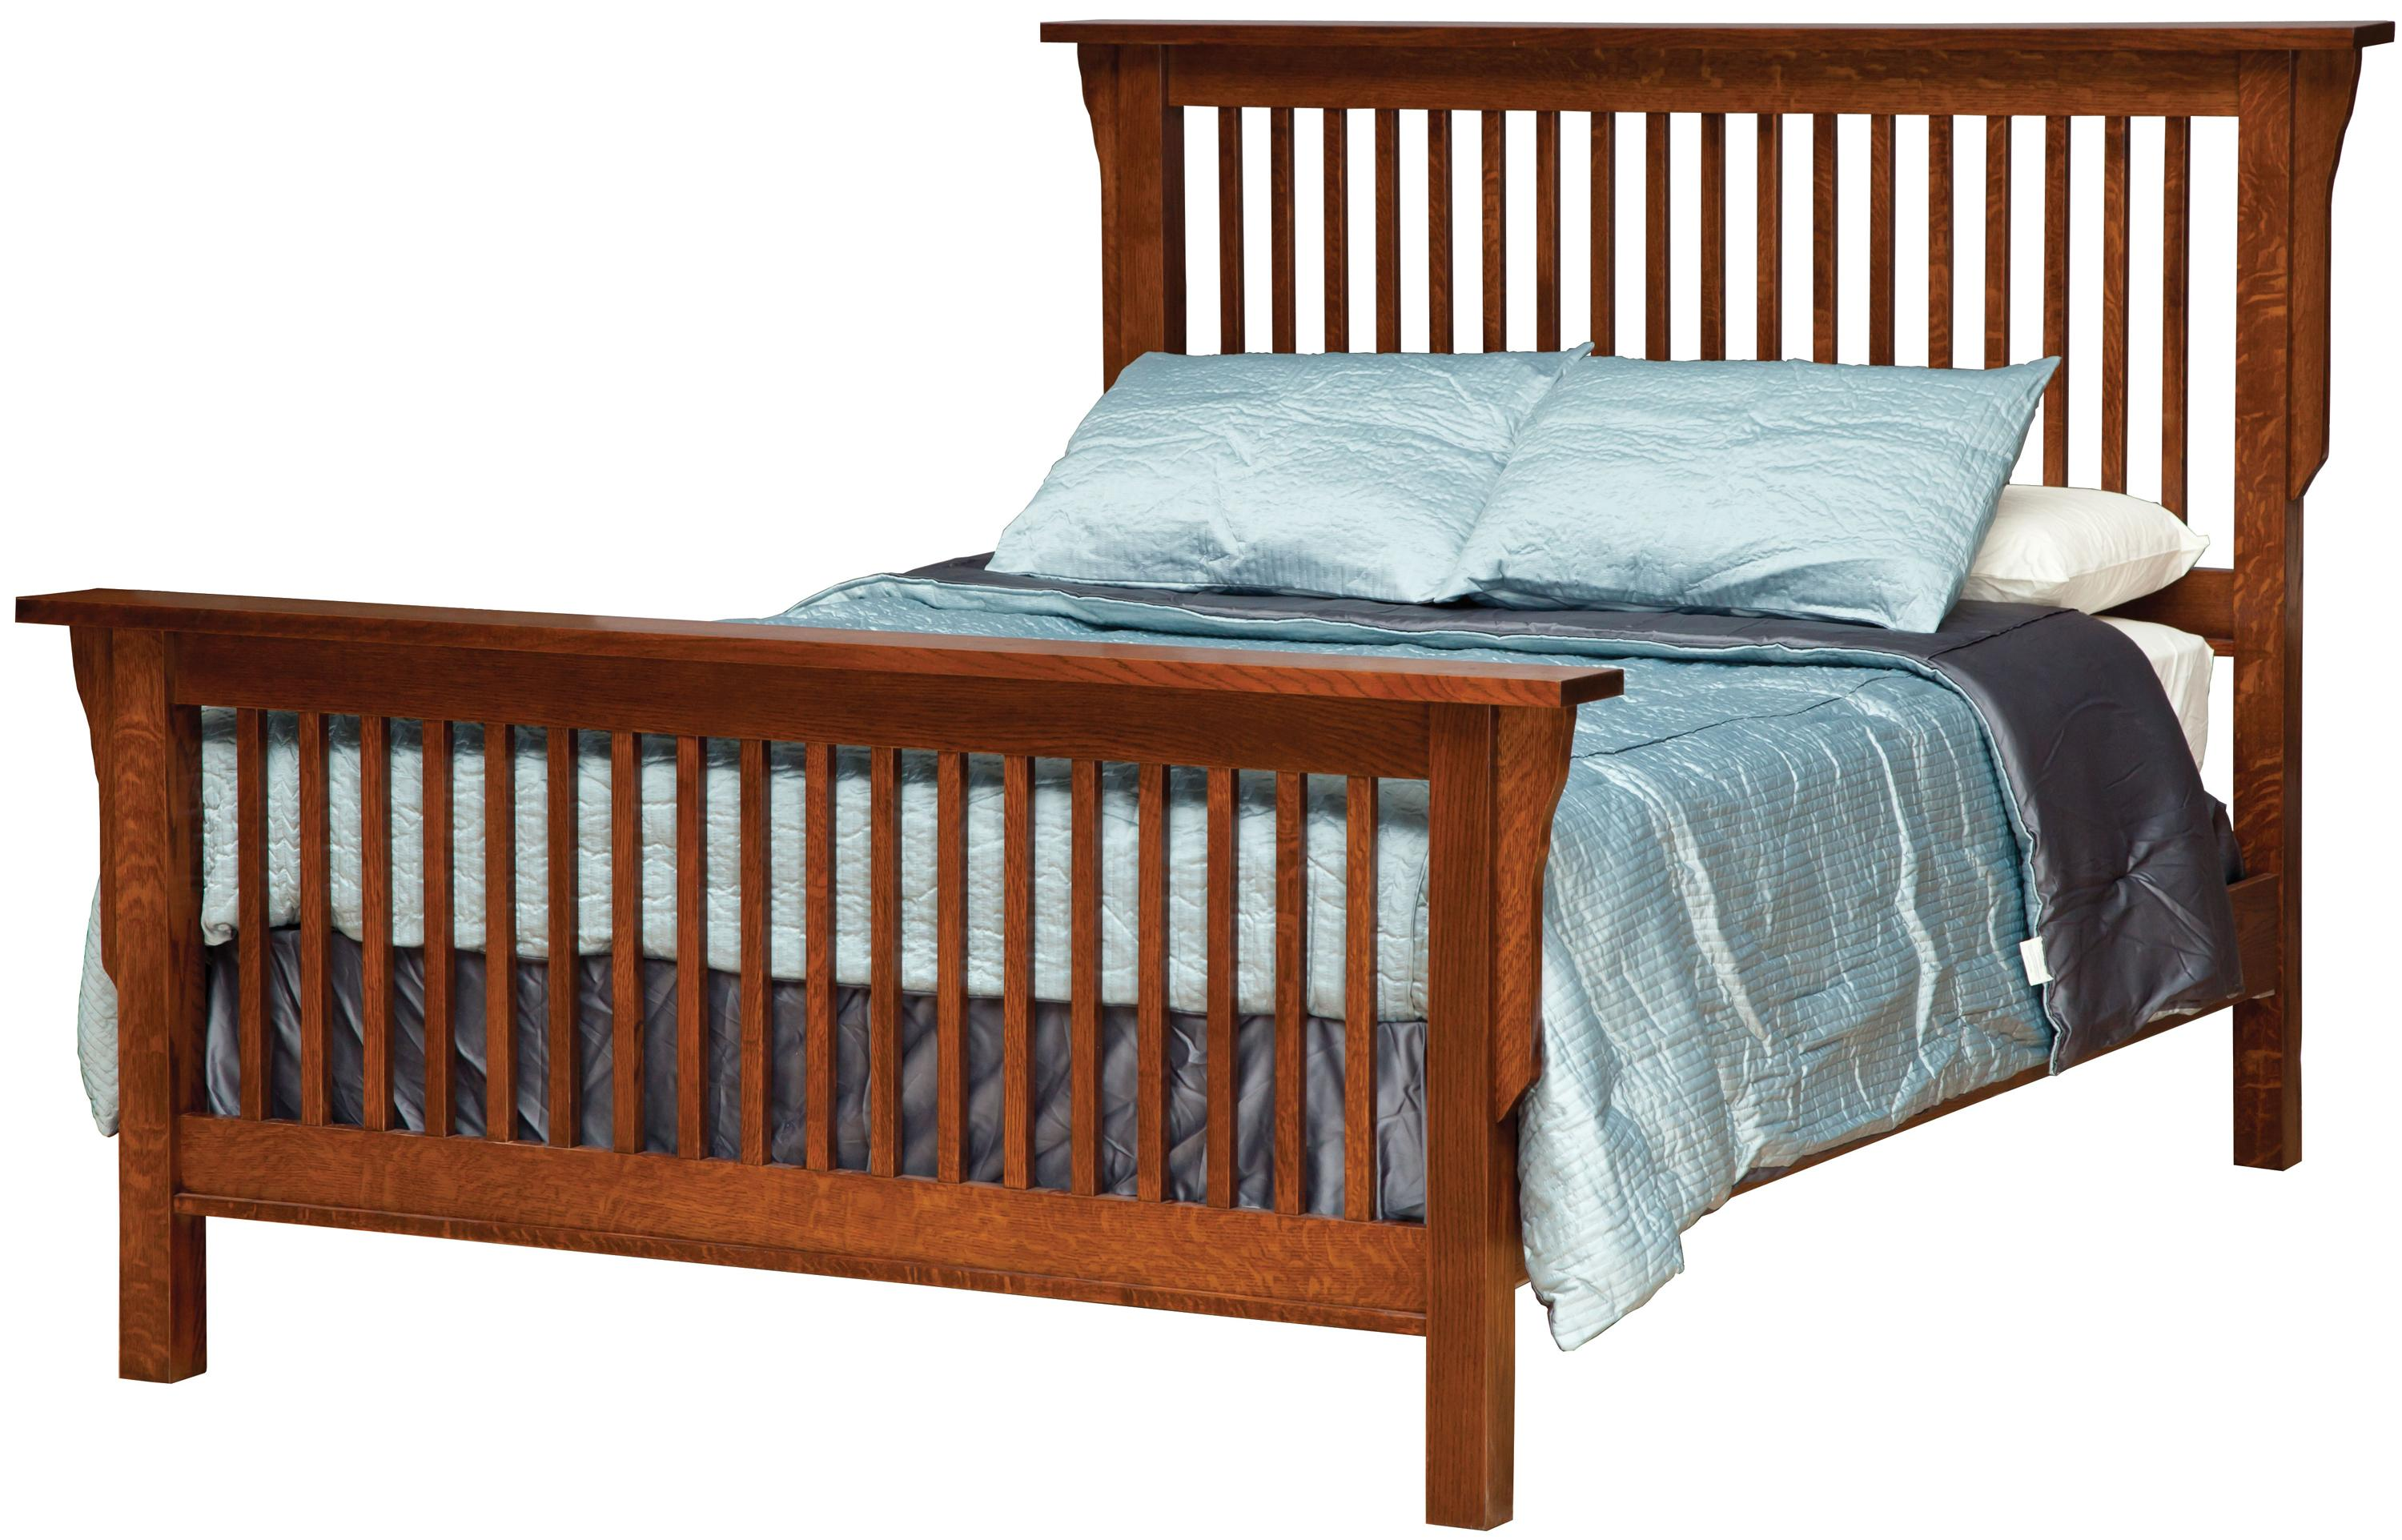 california king missionstyle frame bed with headboard  footboard, Headboard designs